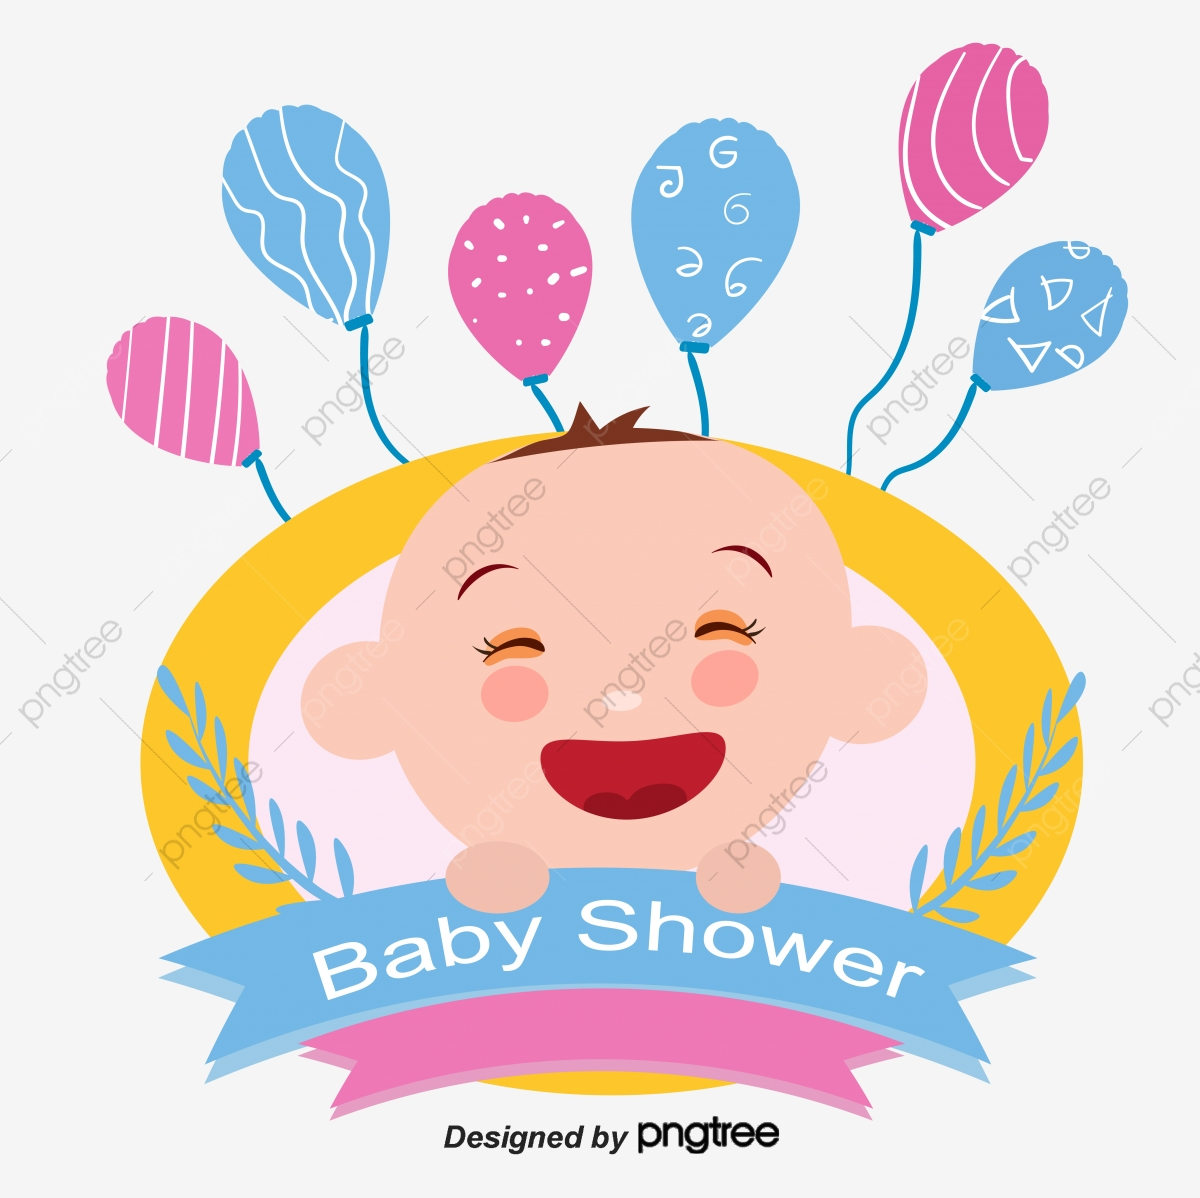 Vector Baby Shower Cute Baby Baby Baby Shower Cartoon Png And Vector With Transparent Background For Free Download